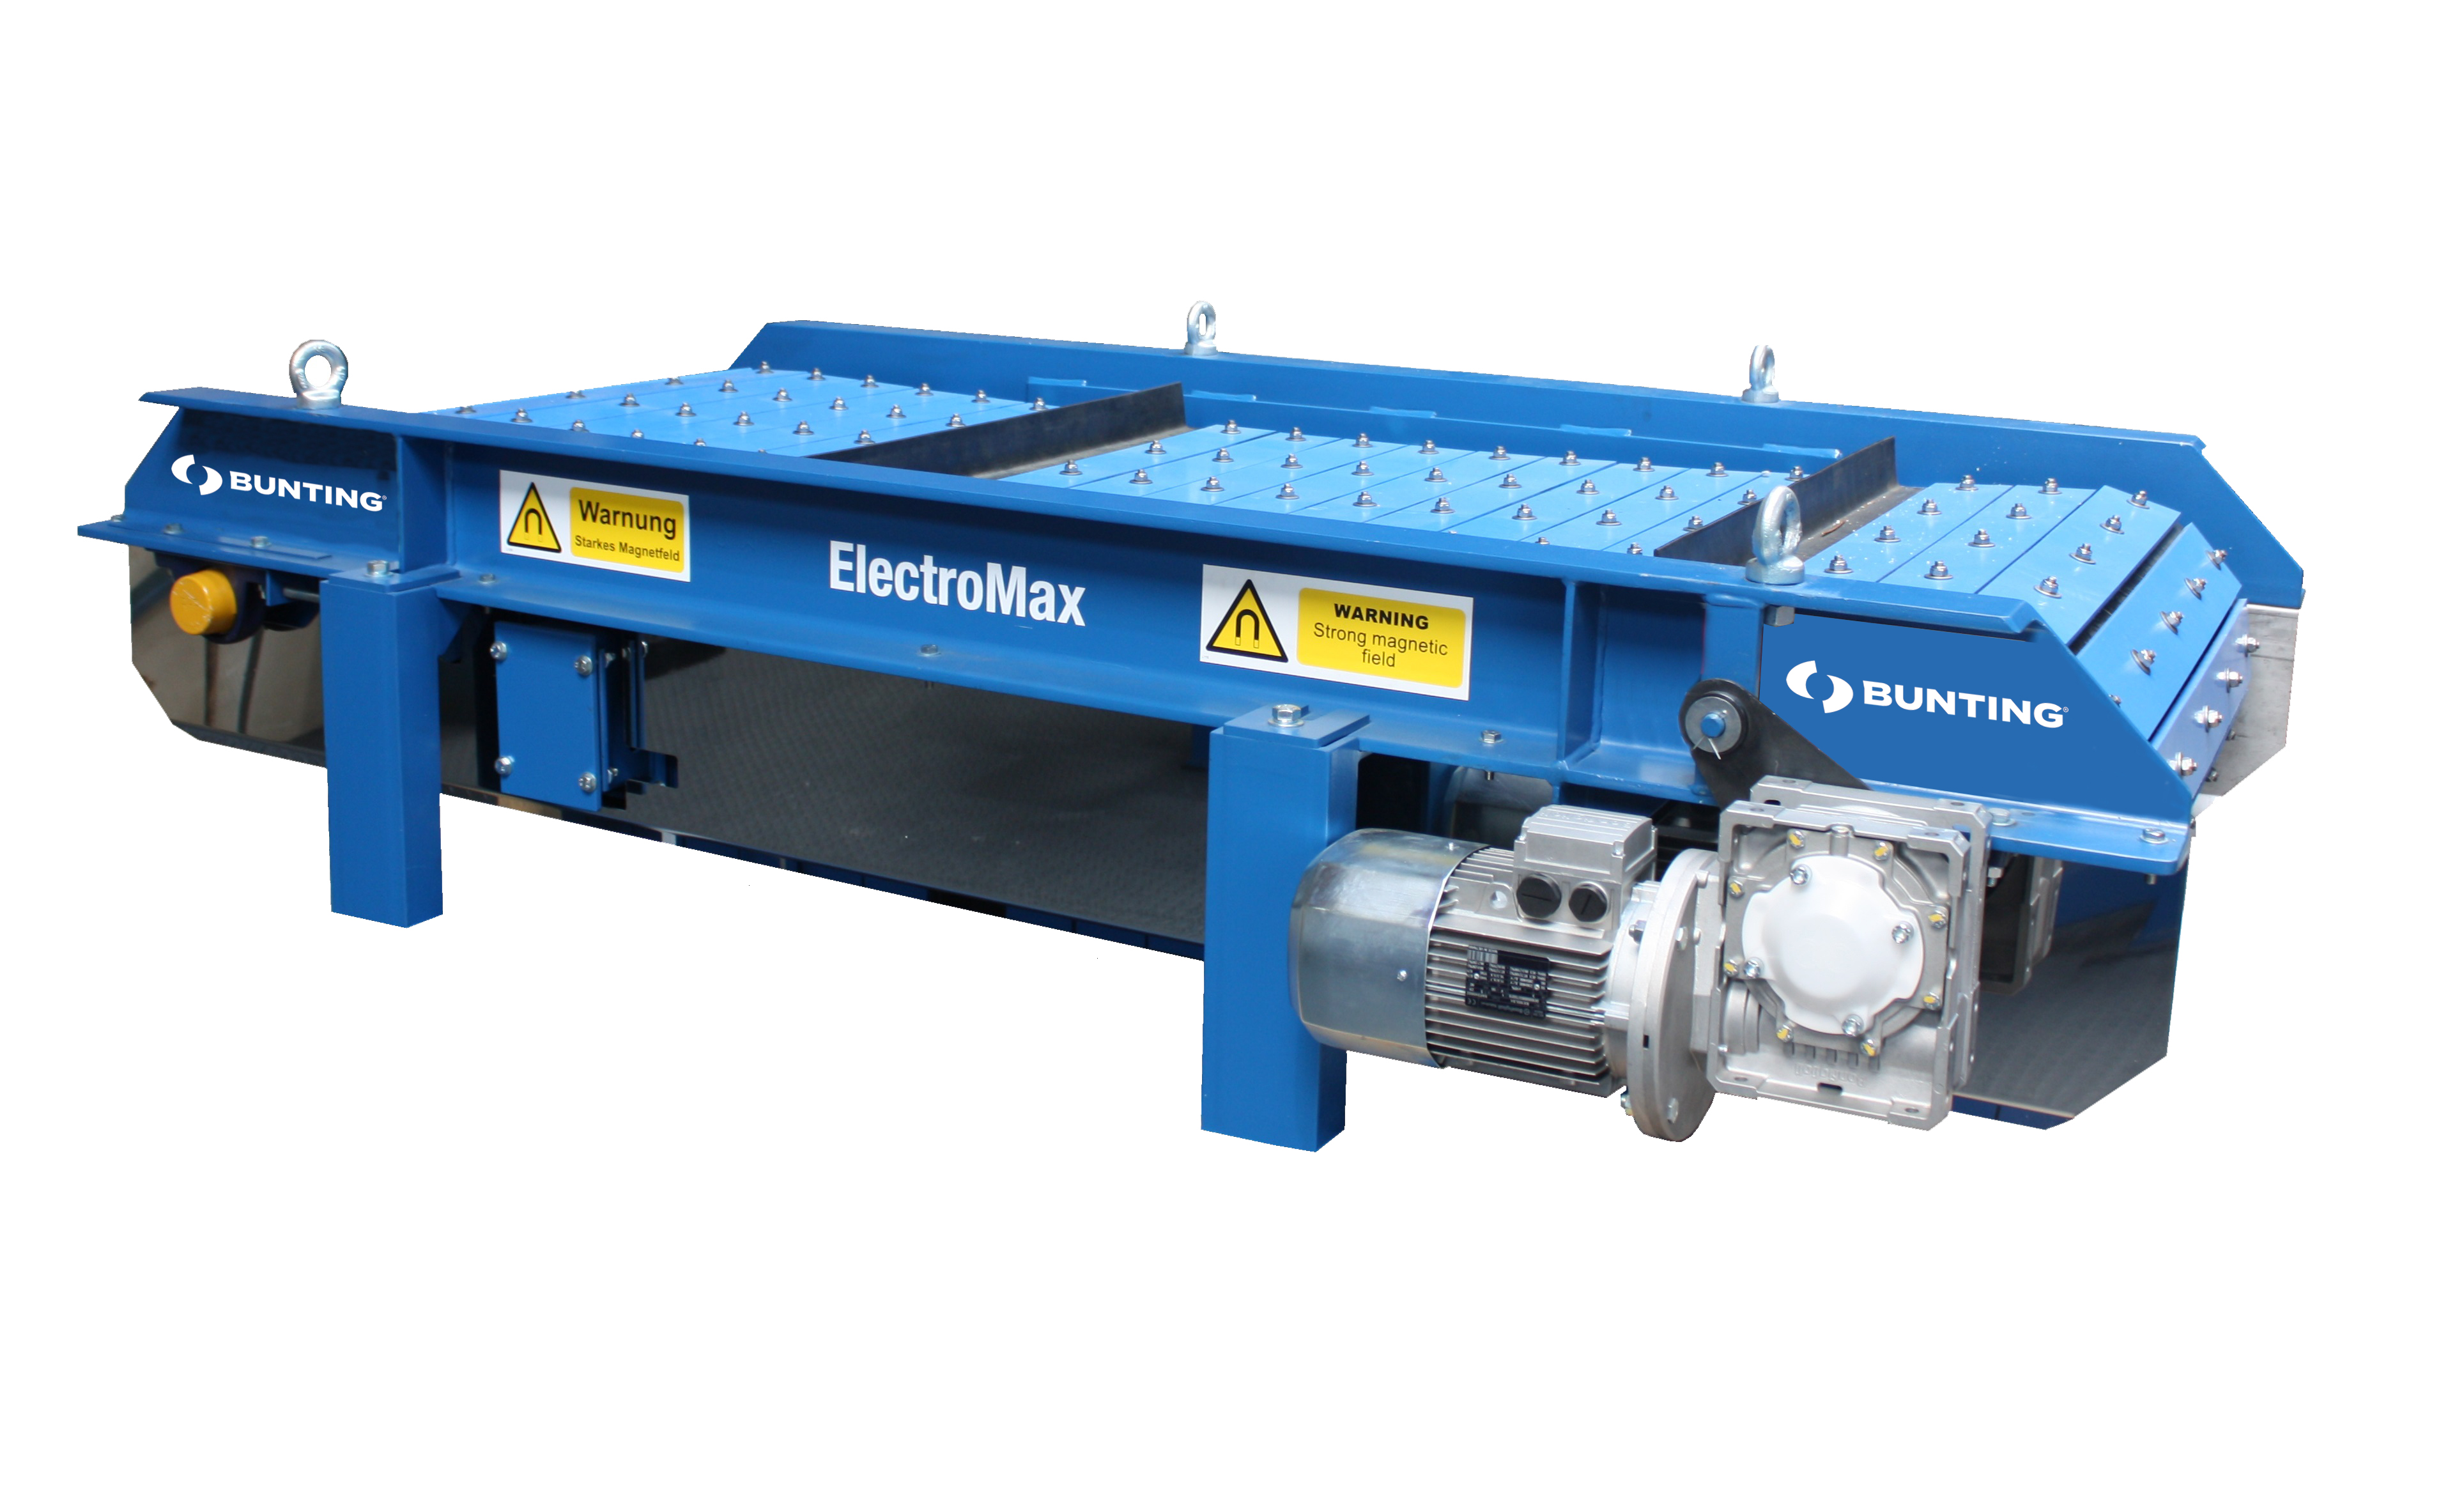 ElectroMax Overband Magnetic Separator electromax1-blue-bunting